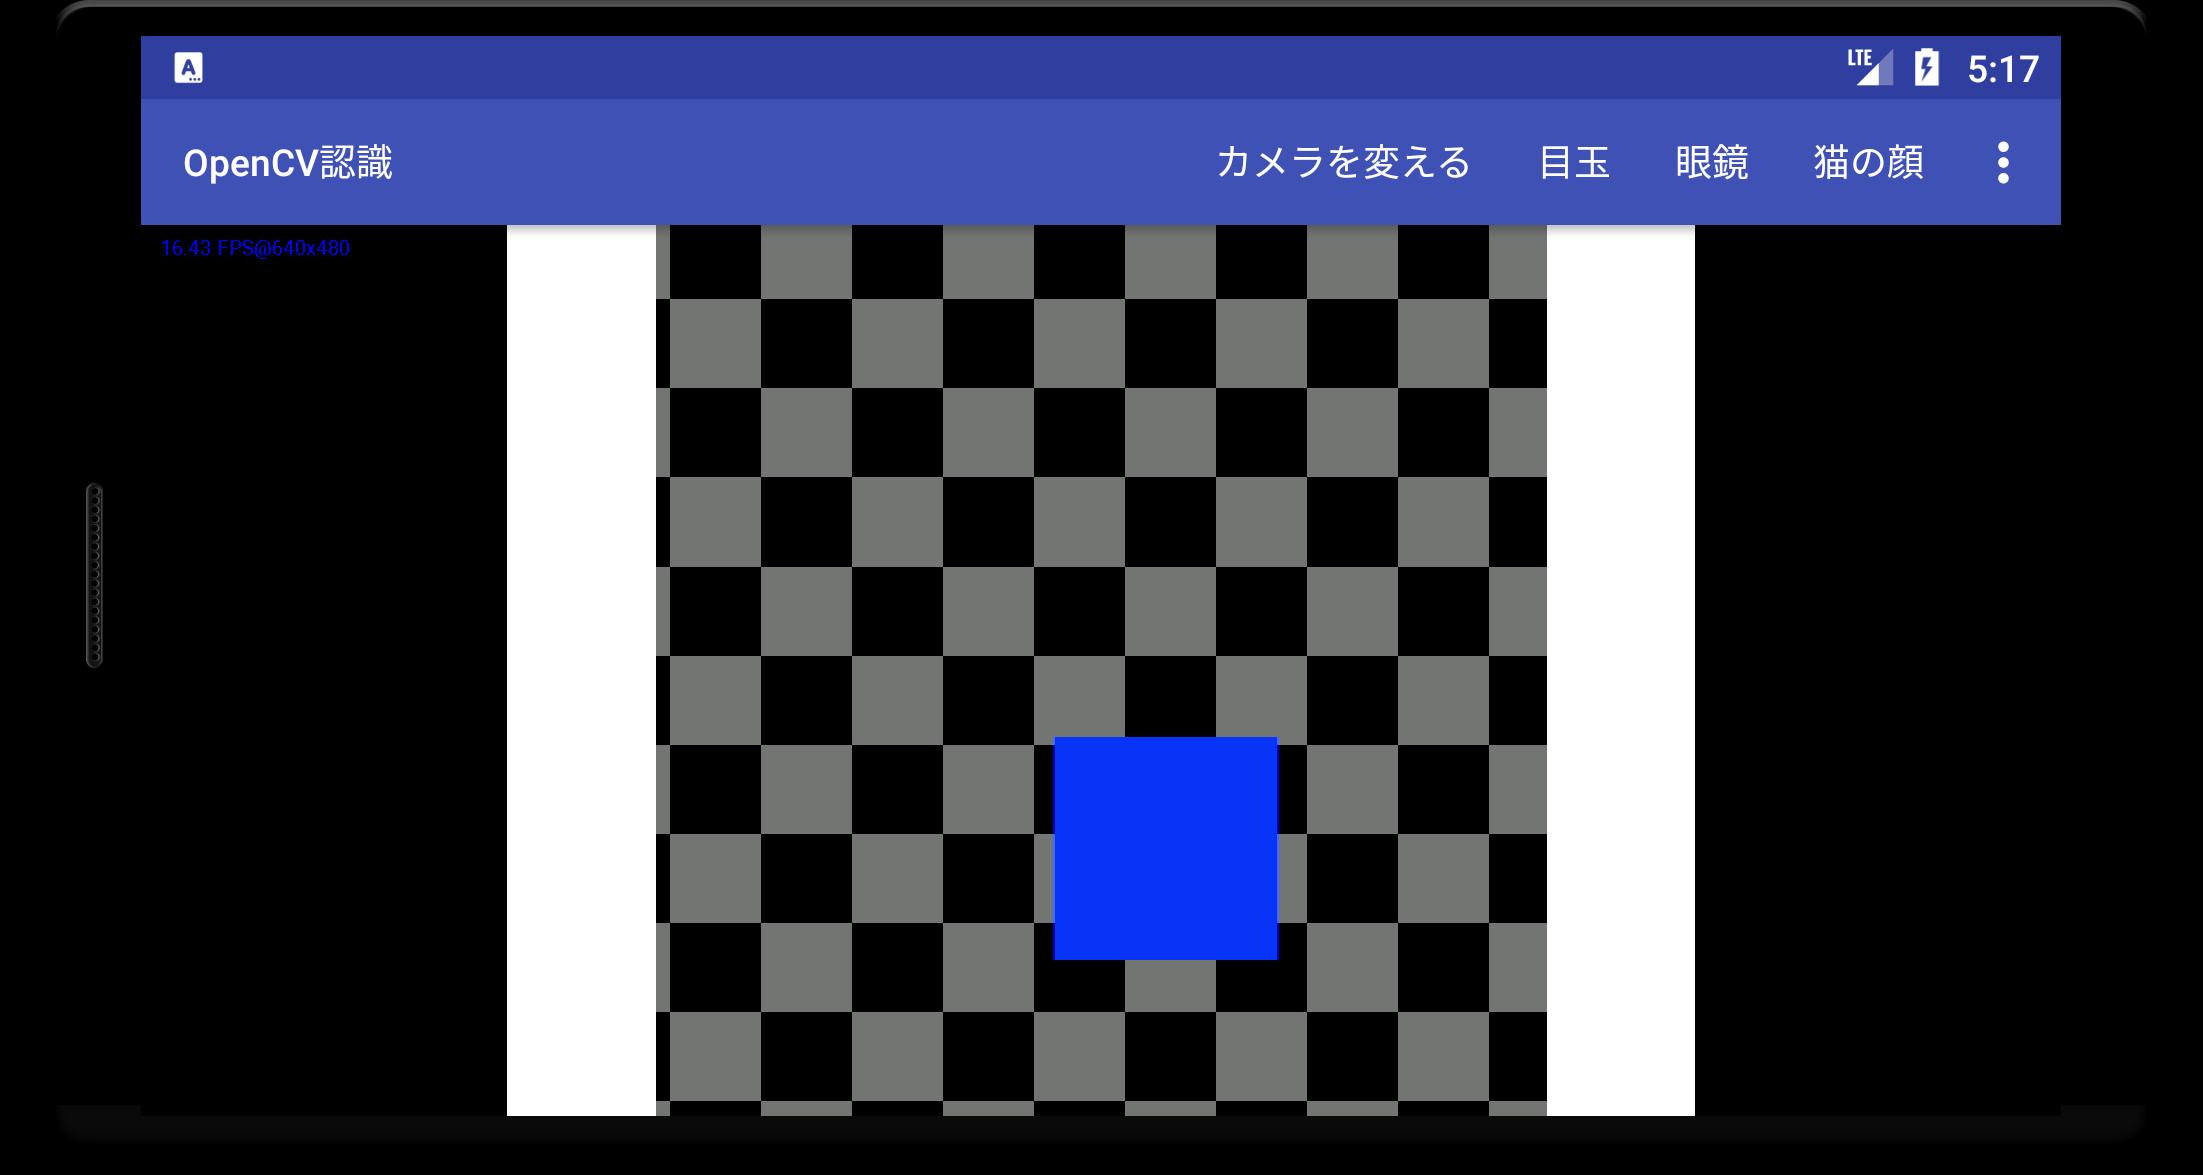 OpenCV - Cascade Classifier (Object recognition) for Android